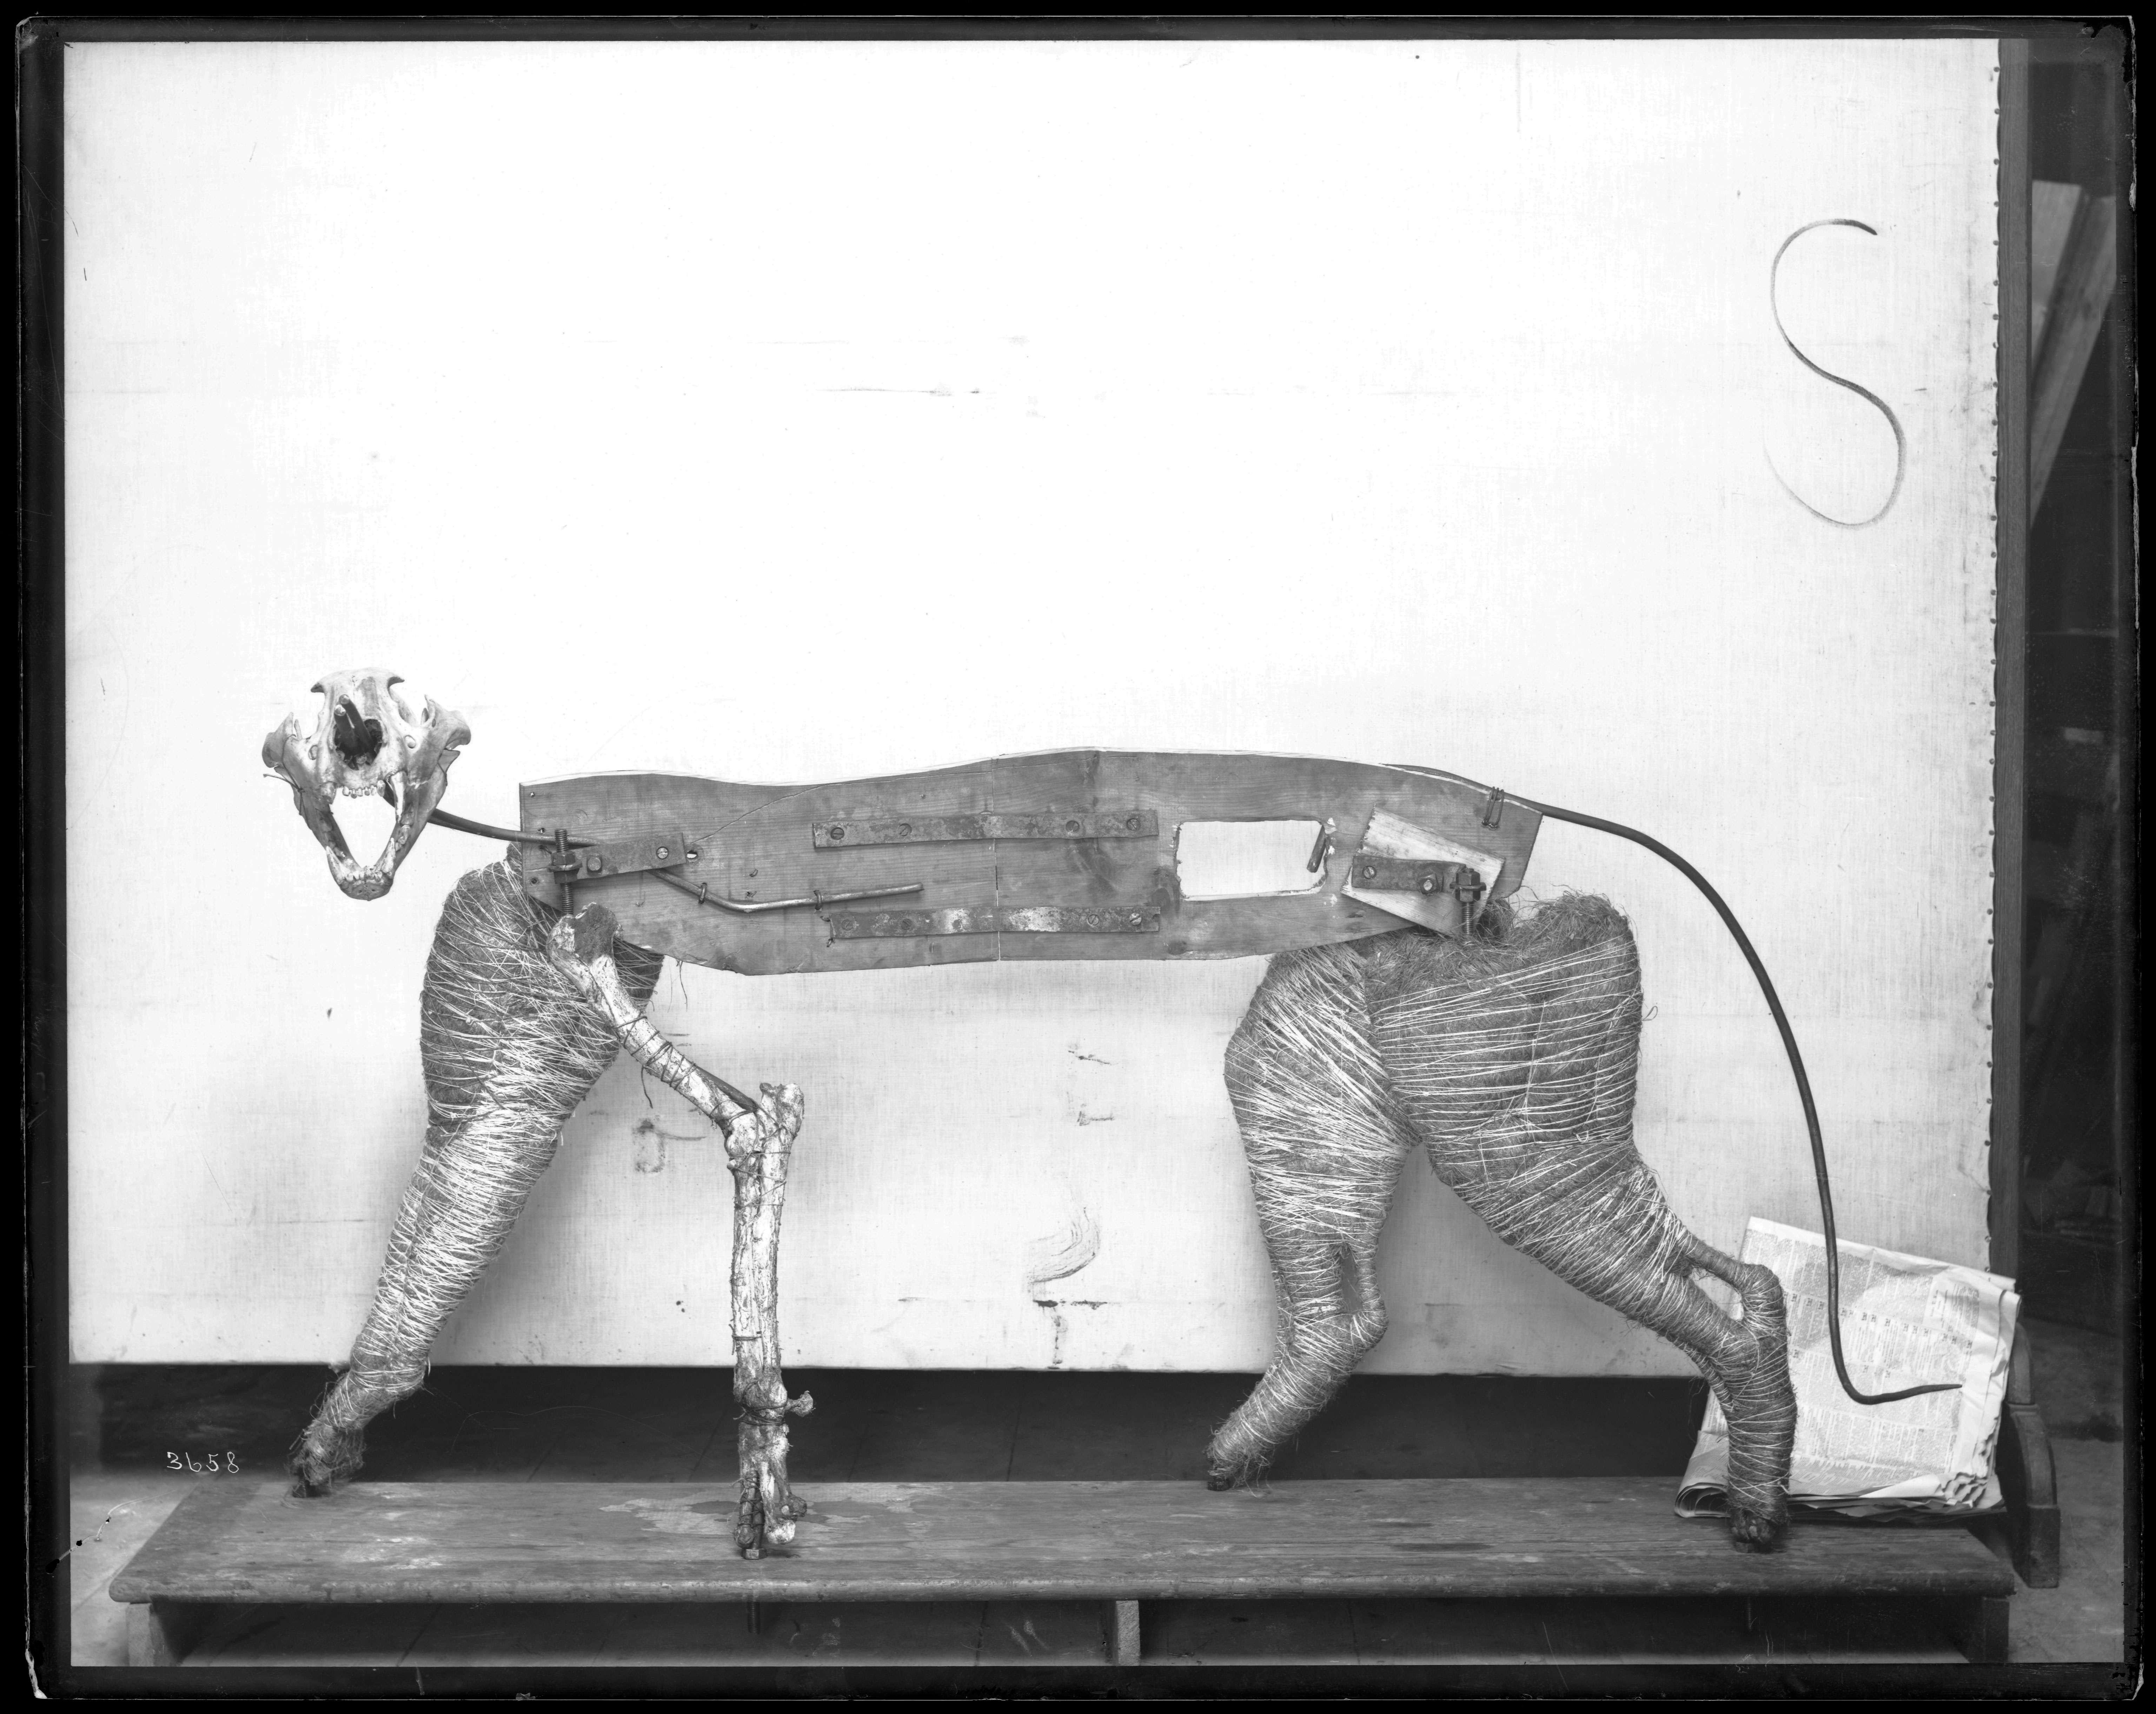 Taxidermy Frame for Tiger Model, 1880s; Glass negative